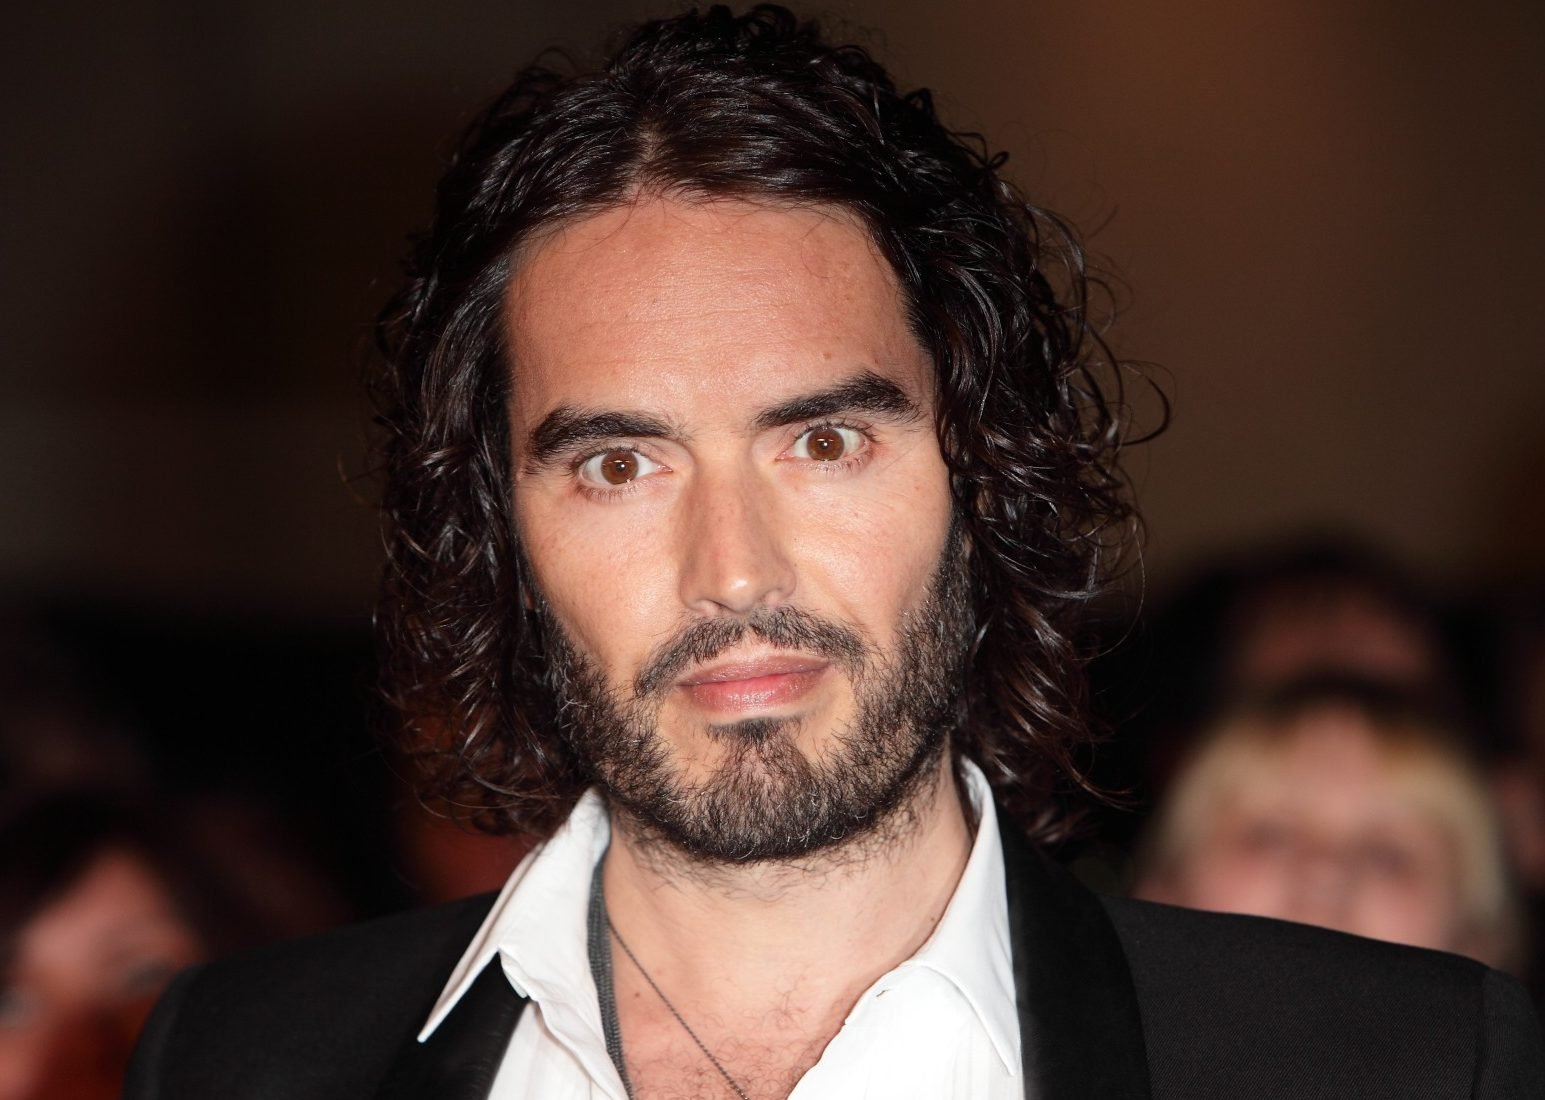 Russell Brand's Mom Suffers 'Life-Threatening Injuries' After 'Serious' Car Accident